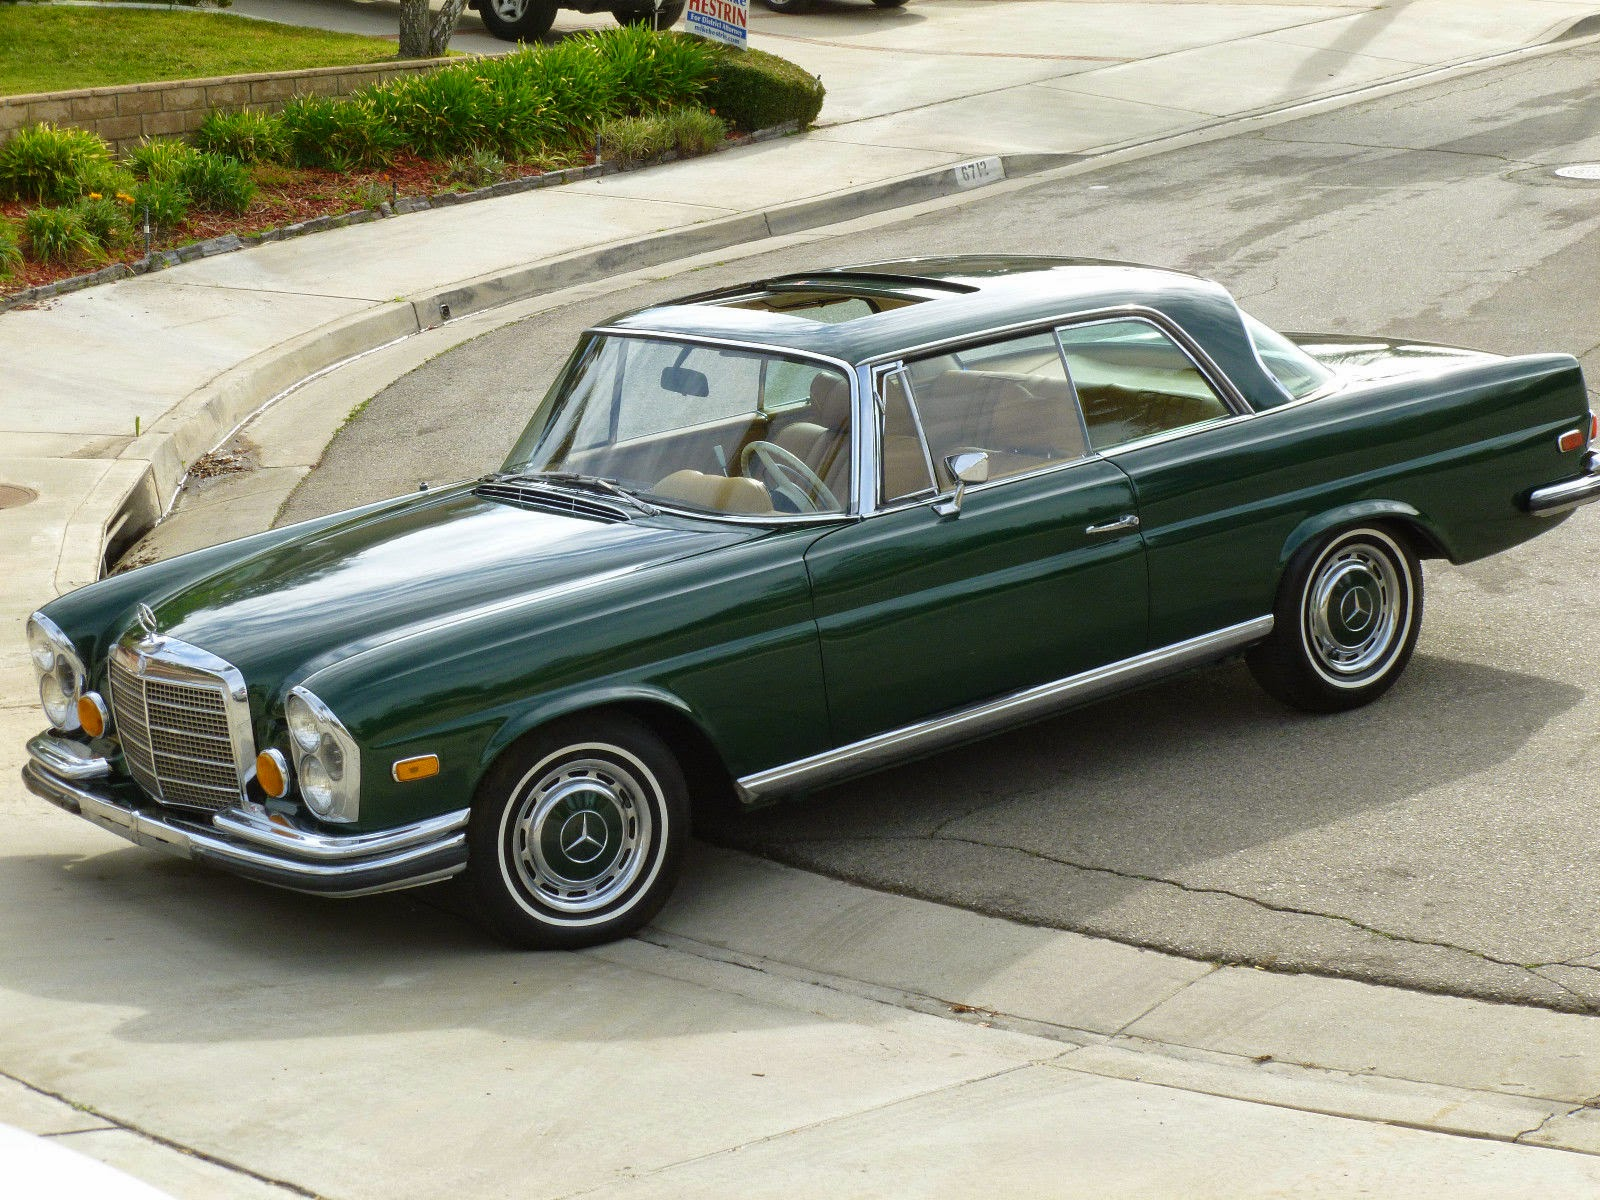 Daily turismo braqc friday 1970 mercedes benz 280 se for 1970 mercedes benz 280se